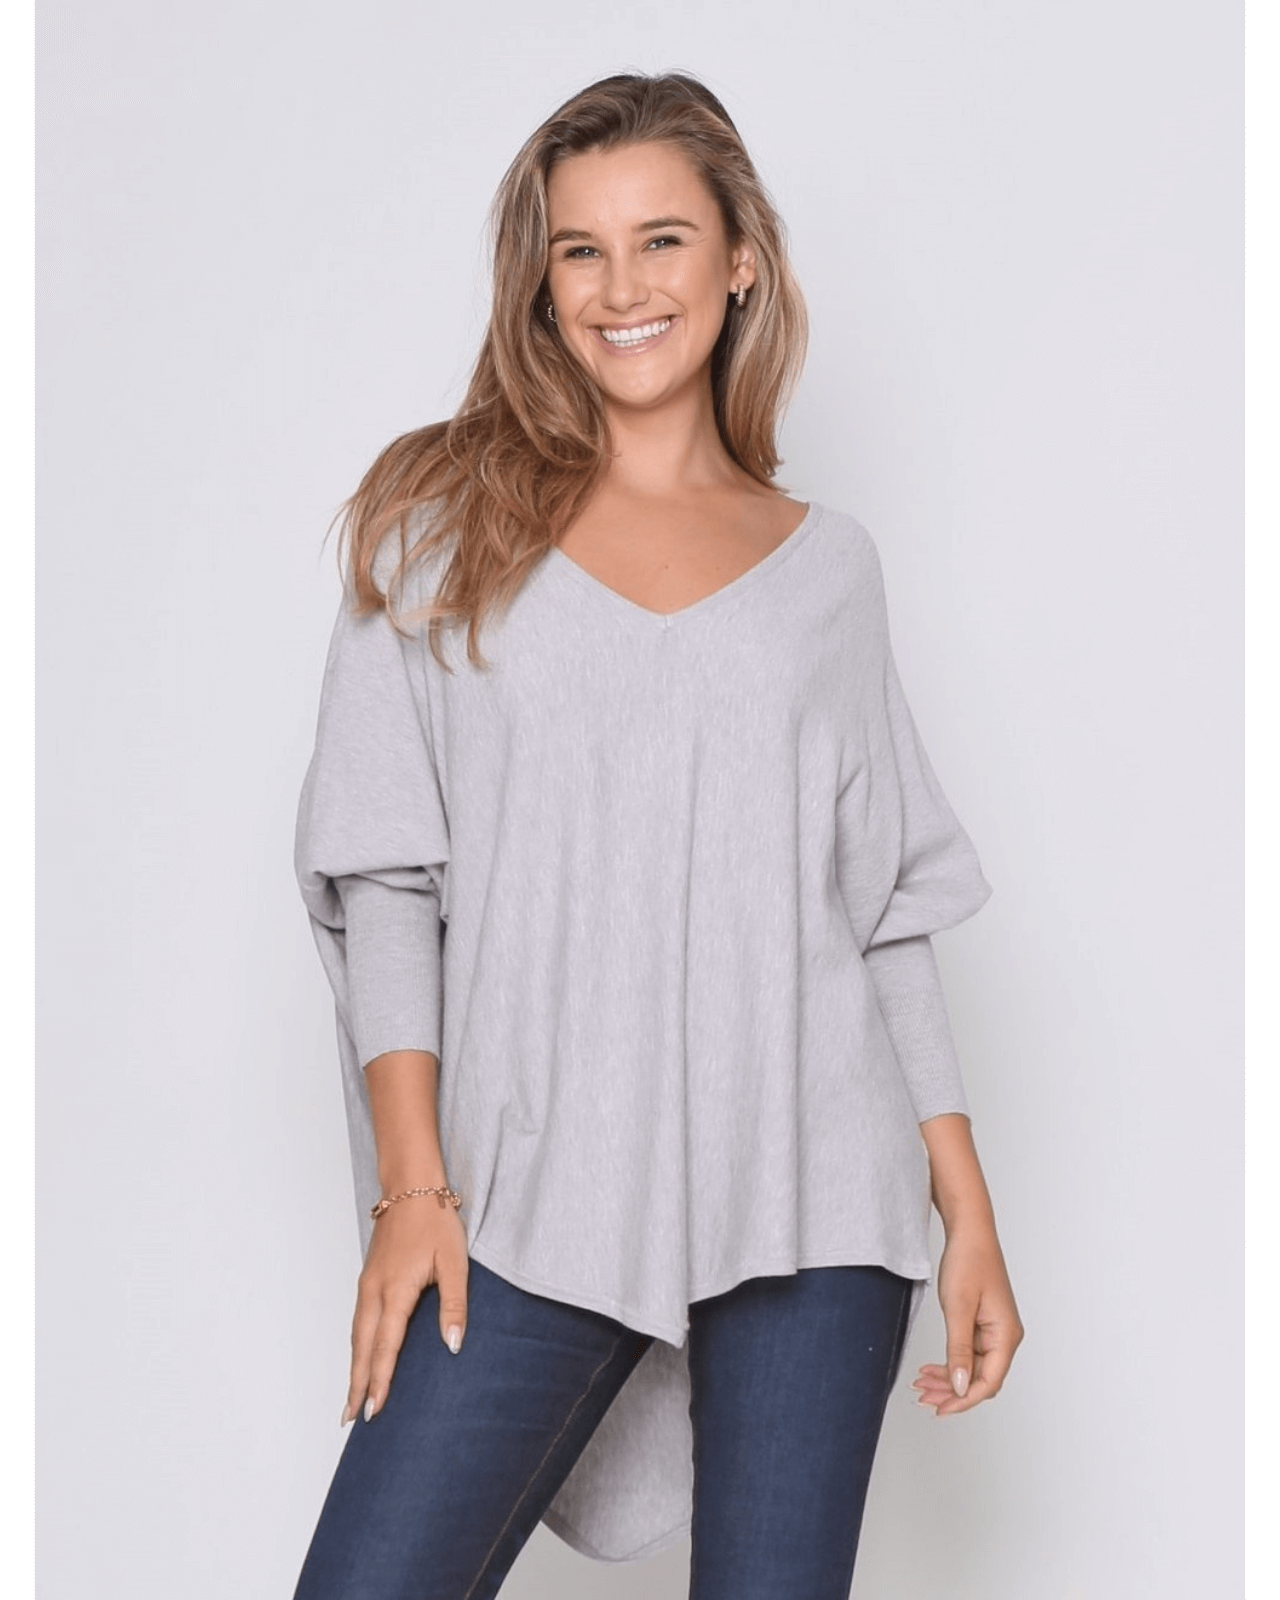 Zali Knit Top - Grey PRE-ORDER